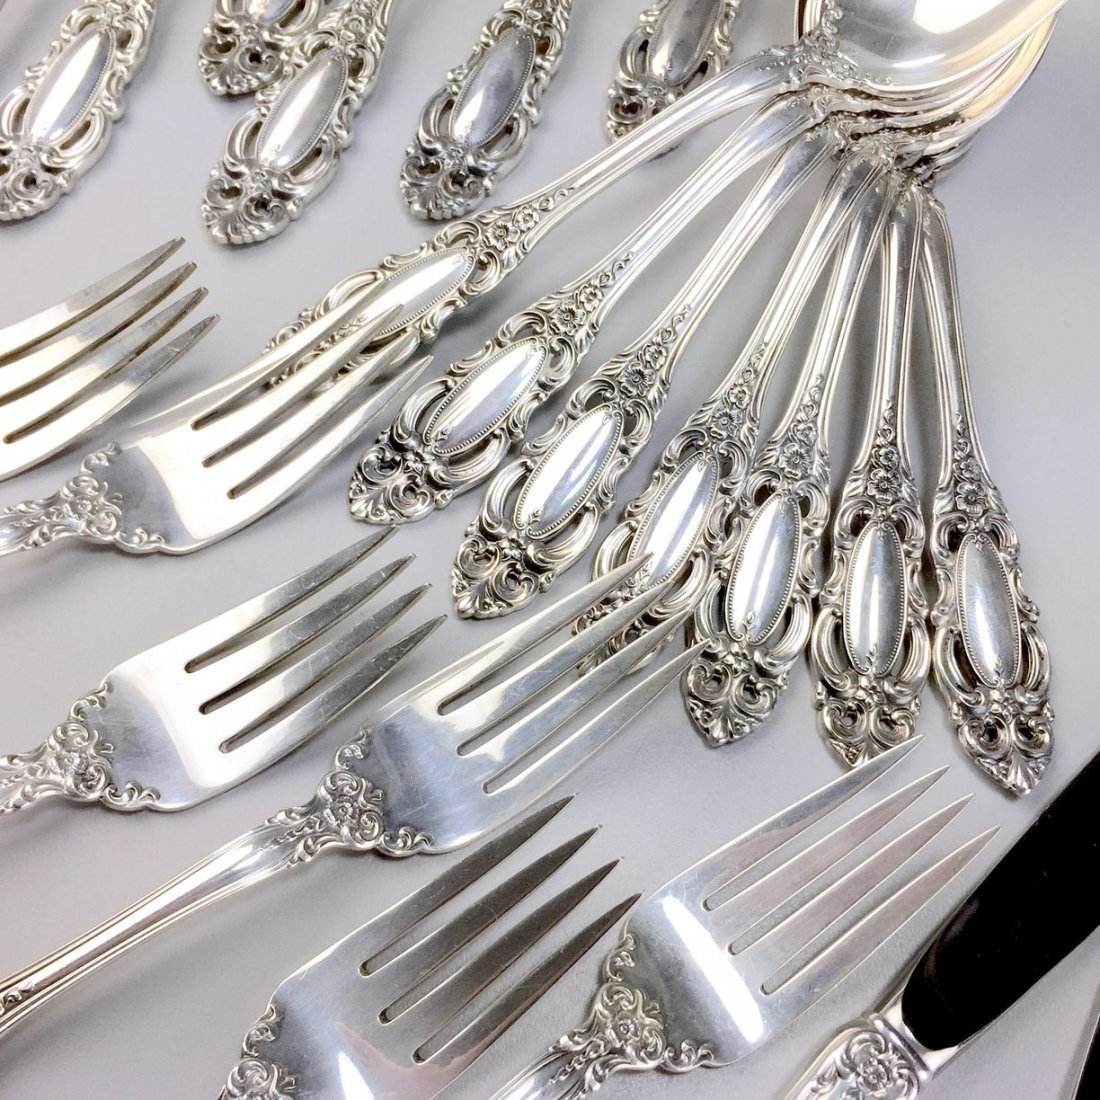 Towle Sterling Silver 1973 Grand Duchess Flatware Set - 7